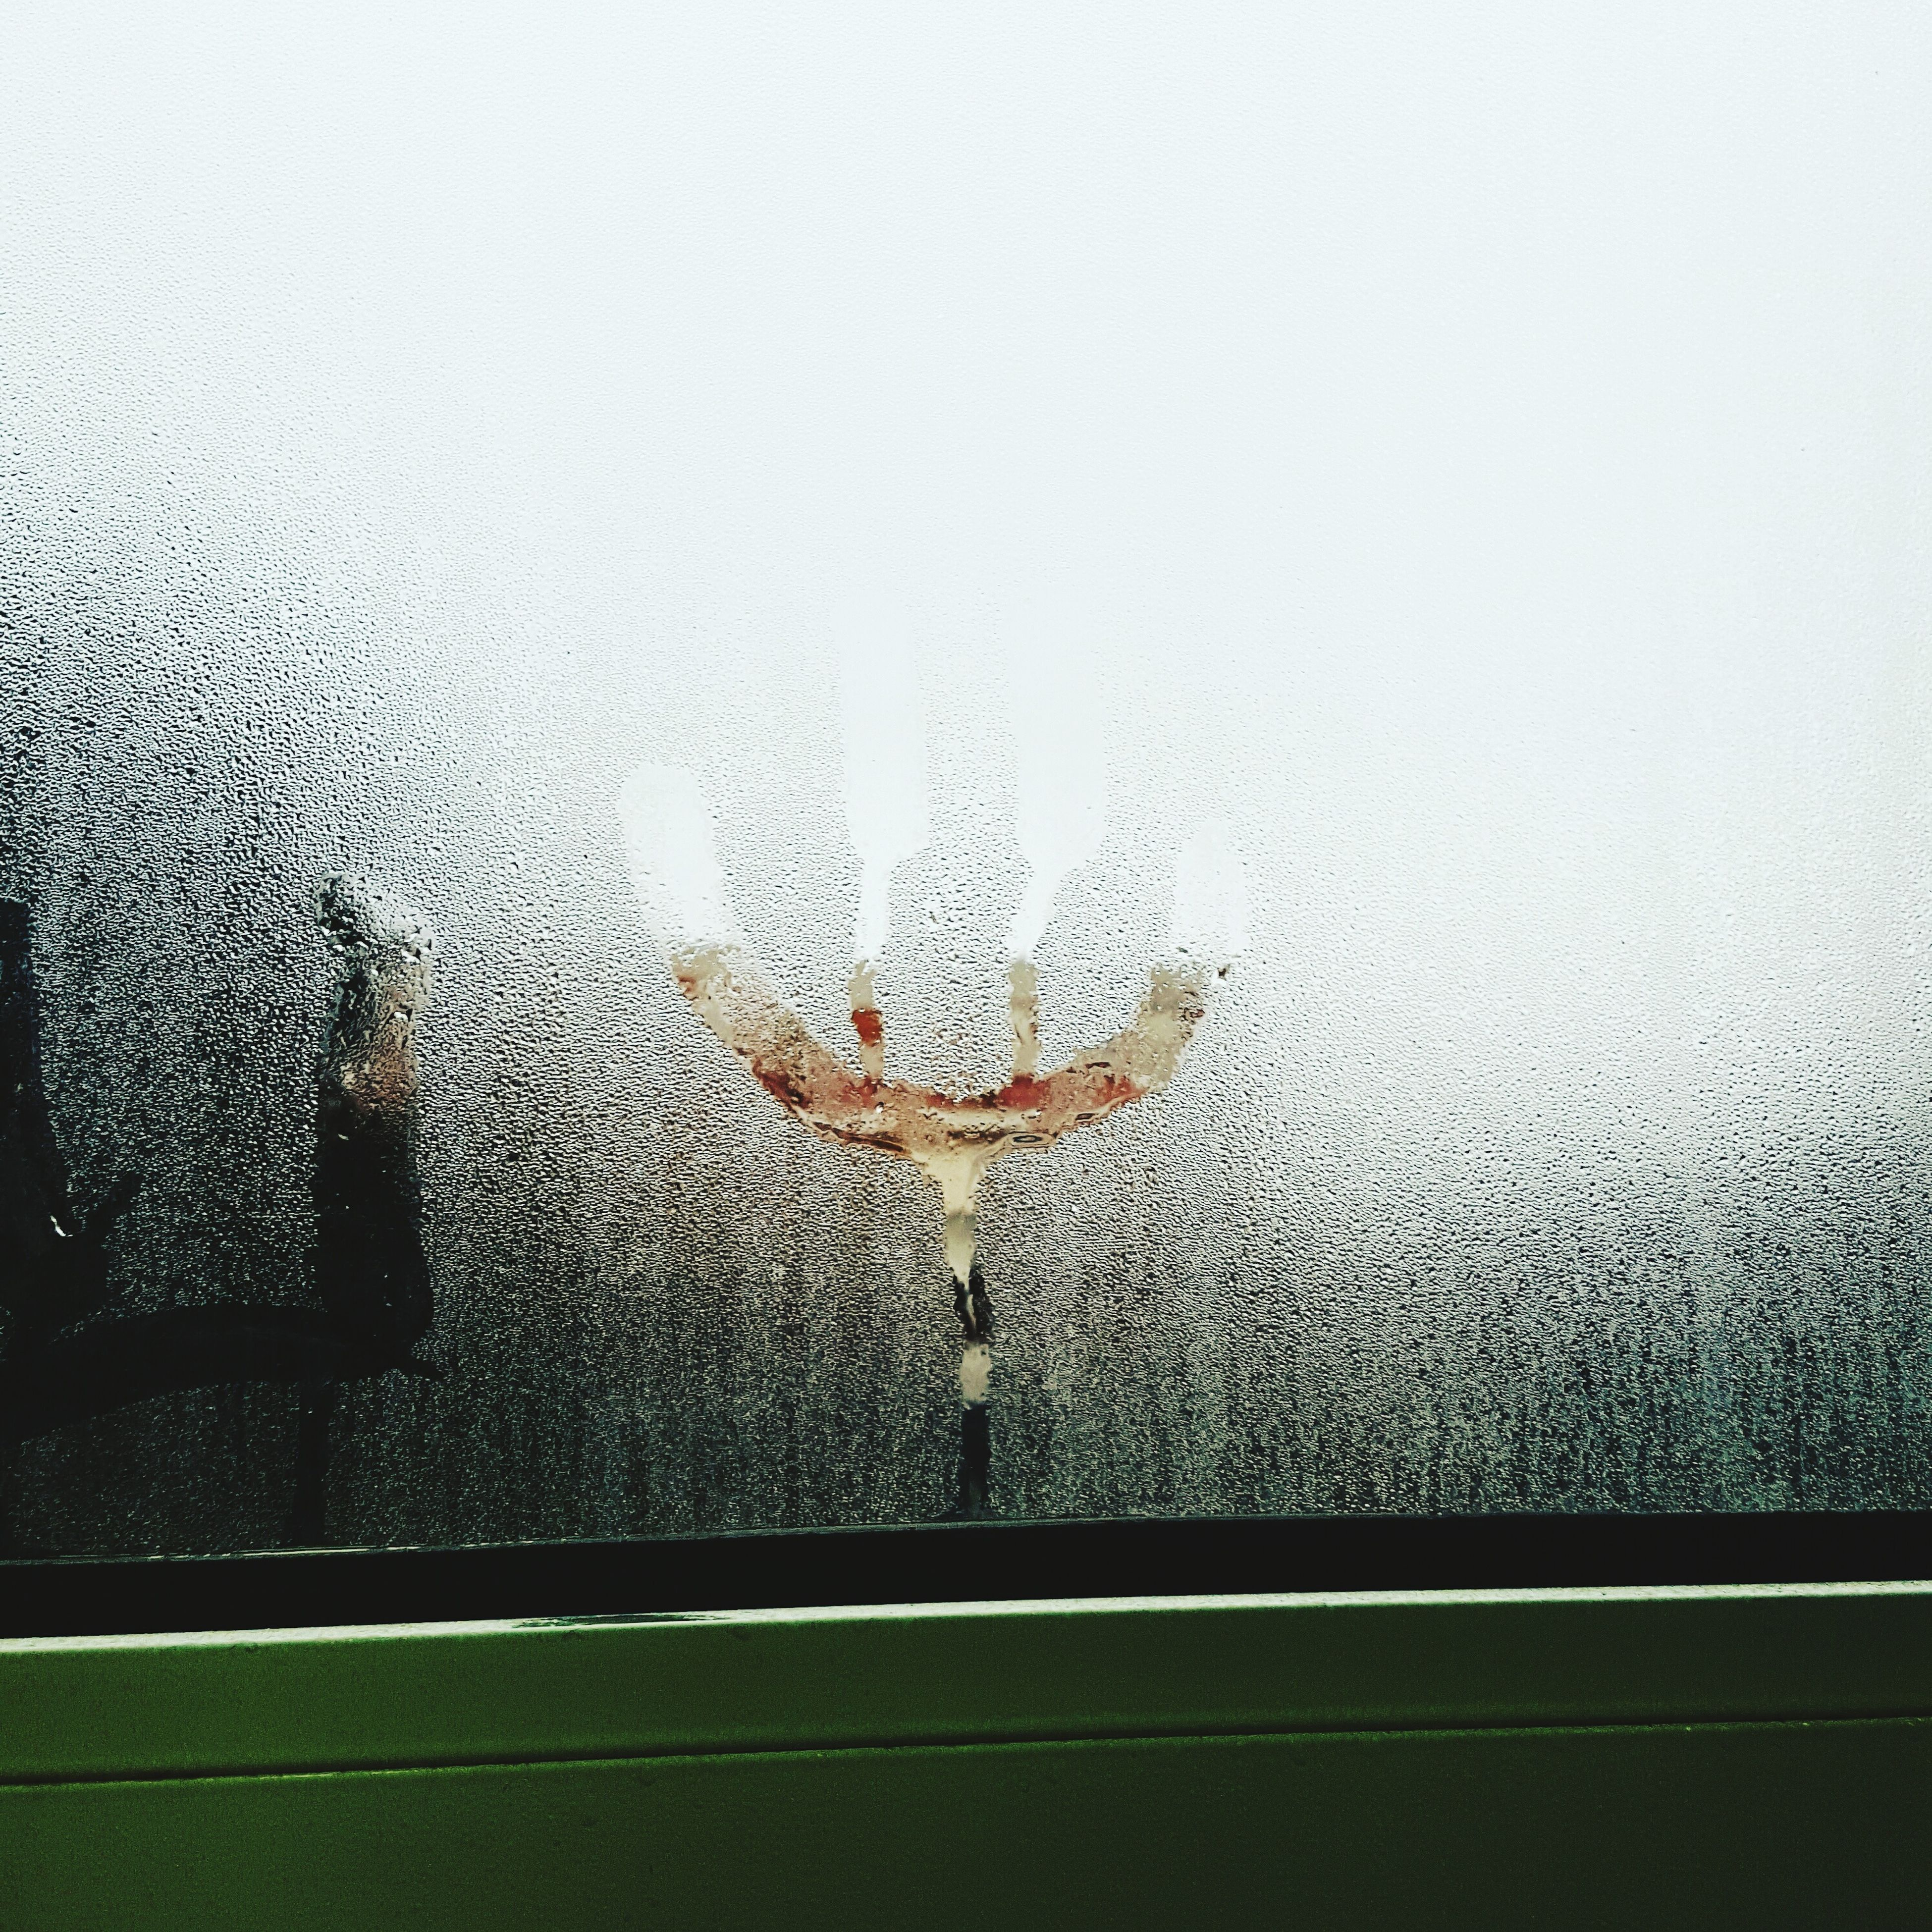 window, water, glass - material, transparent, drop, wet, indoors, animal themes, rain, glass, animals in the wild, season, one animal, wildlife, close-up, raindrop, weather, insect, transportation, nature